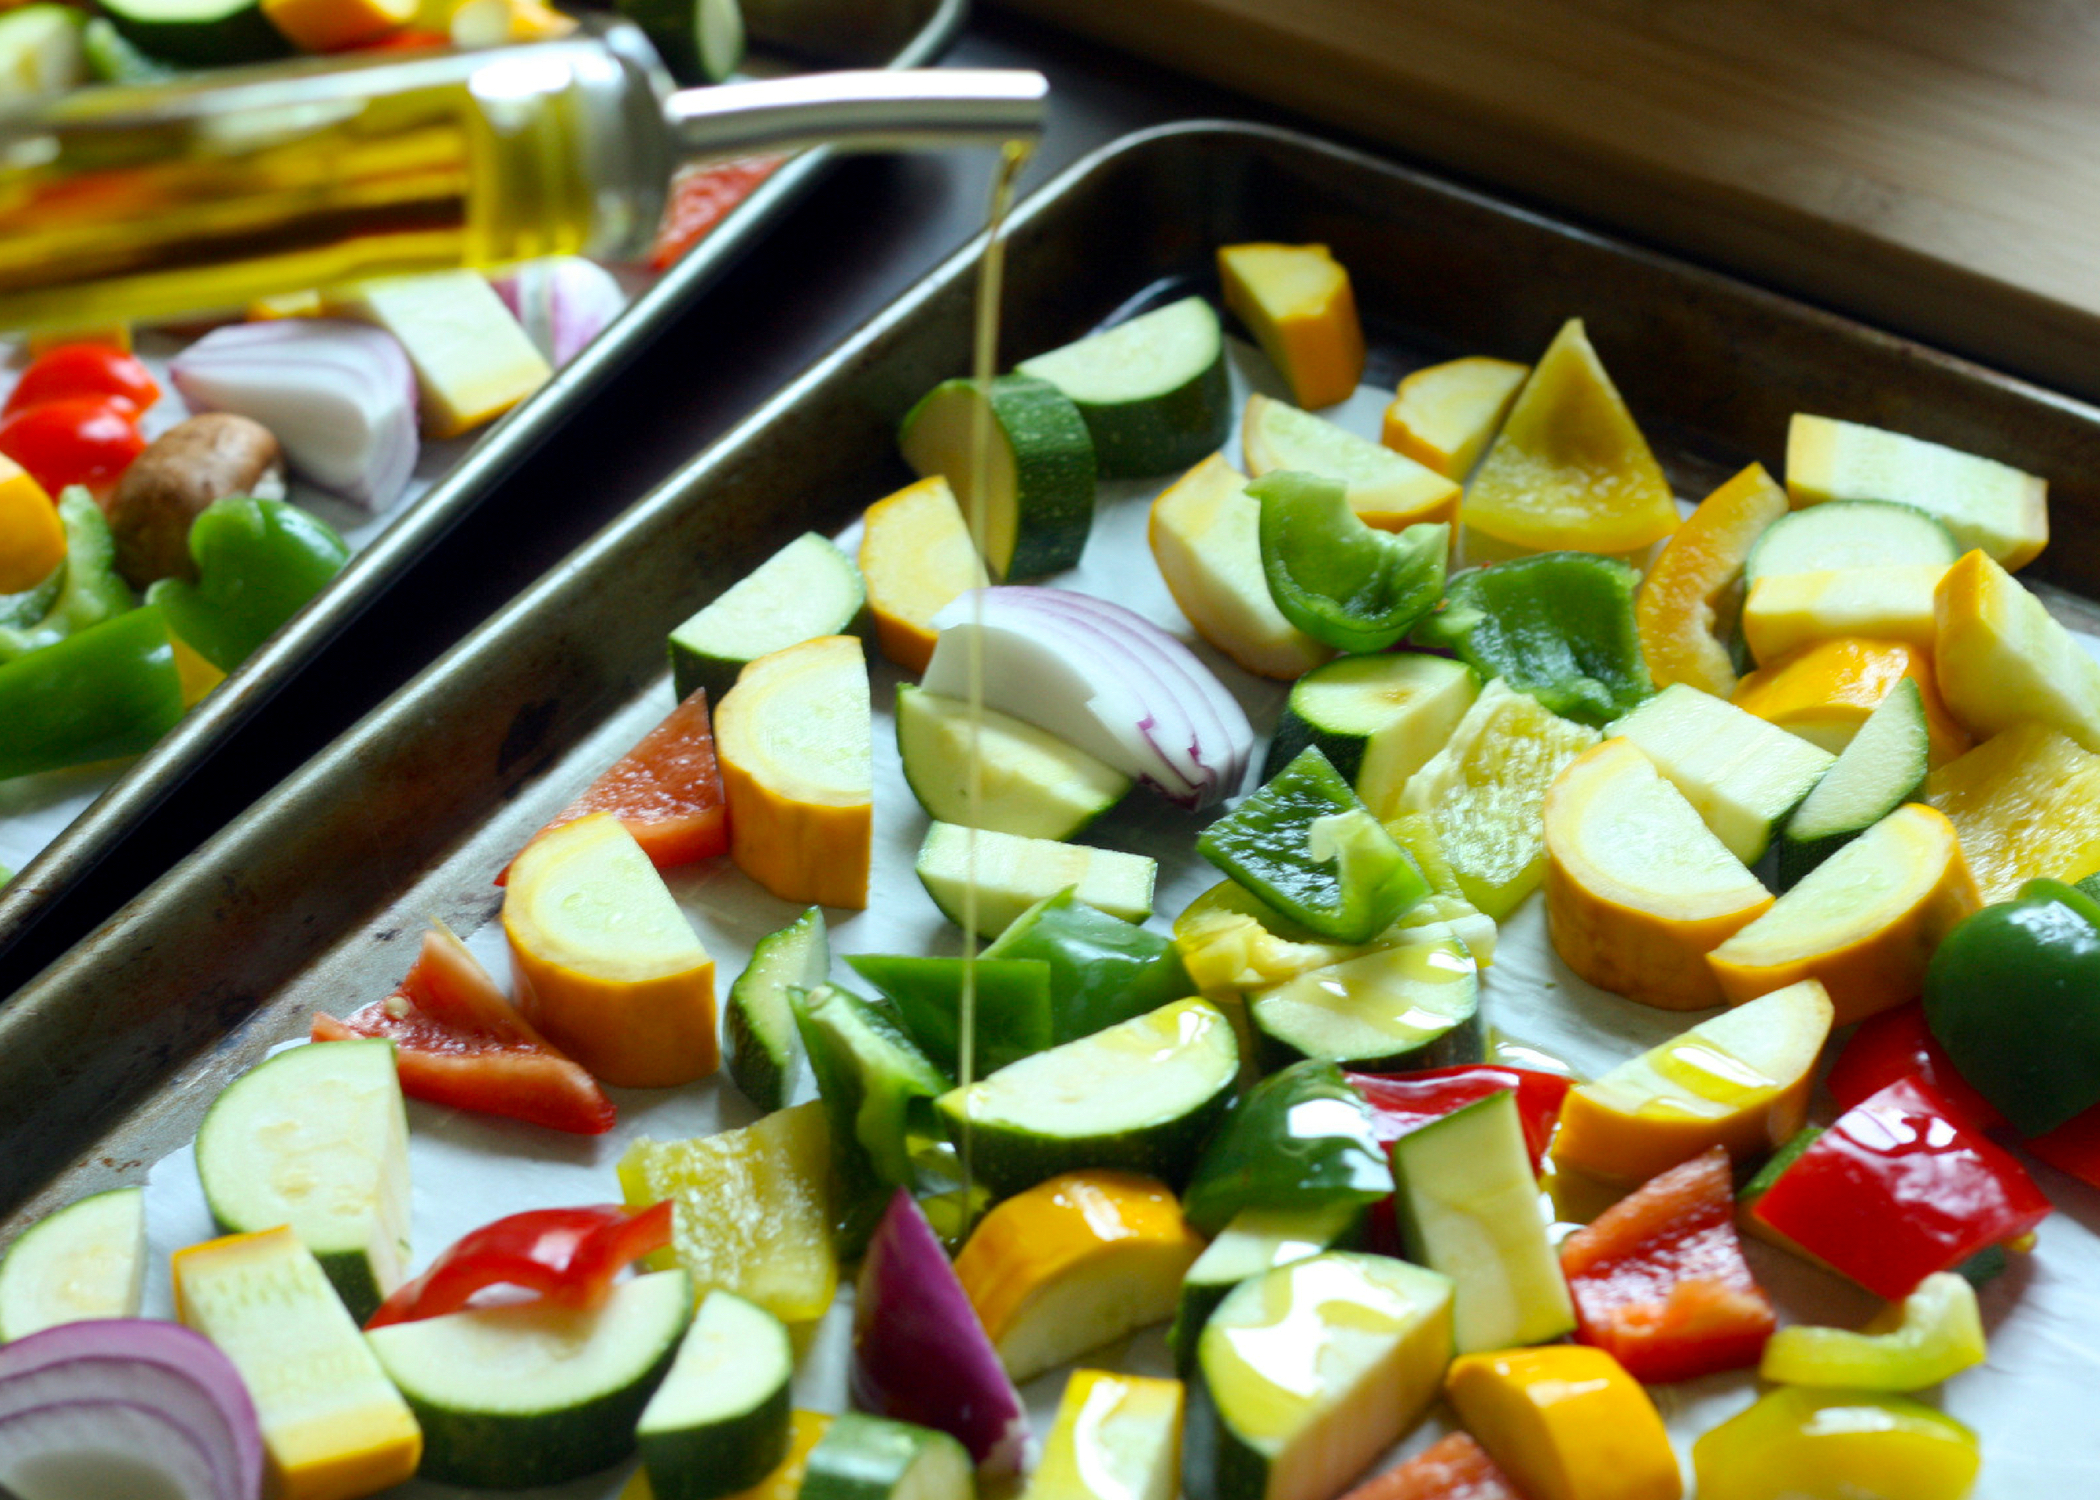 Pouring olive oil over vegetables on a sheet pan